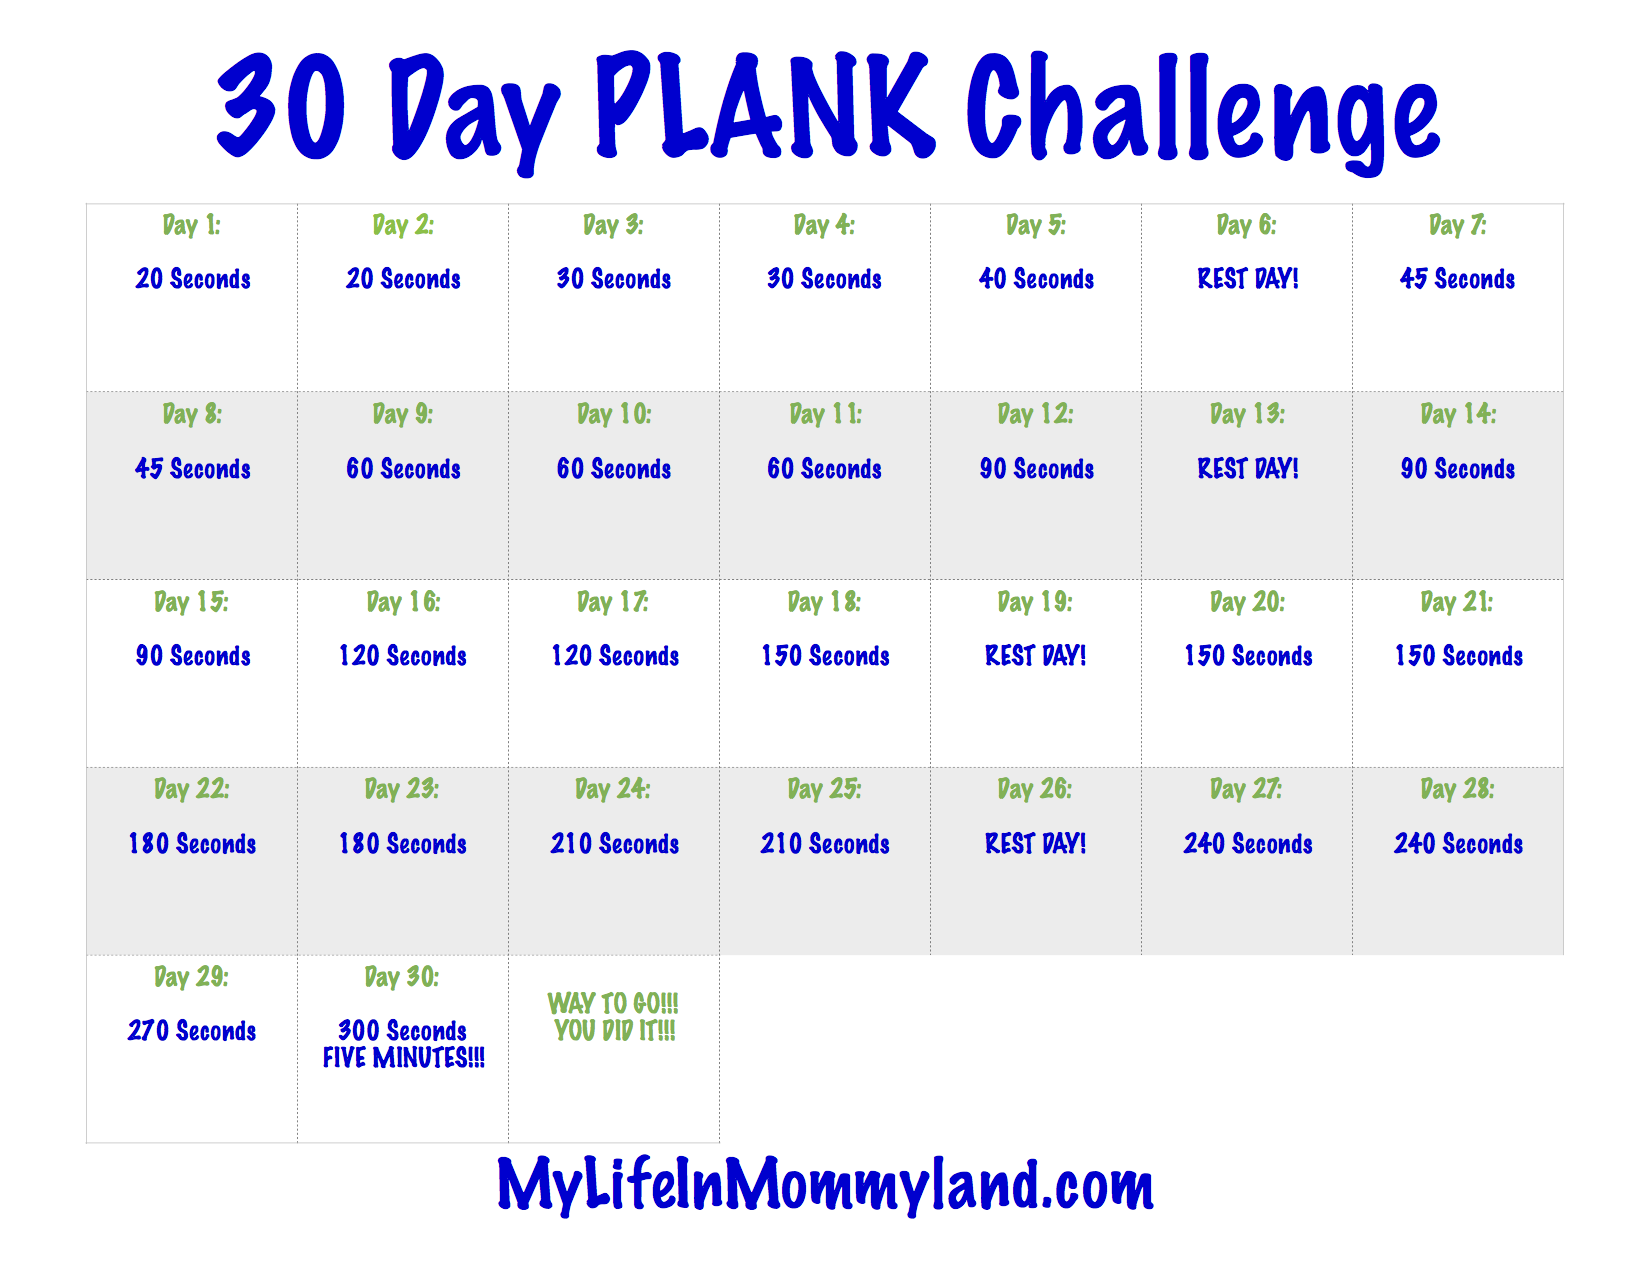 image about 30 Day Plank Challenge Printable called 30 Working day Mommyland Plank Problem My Everyday living in just Mommyland